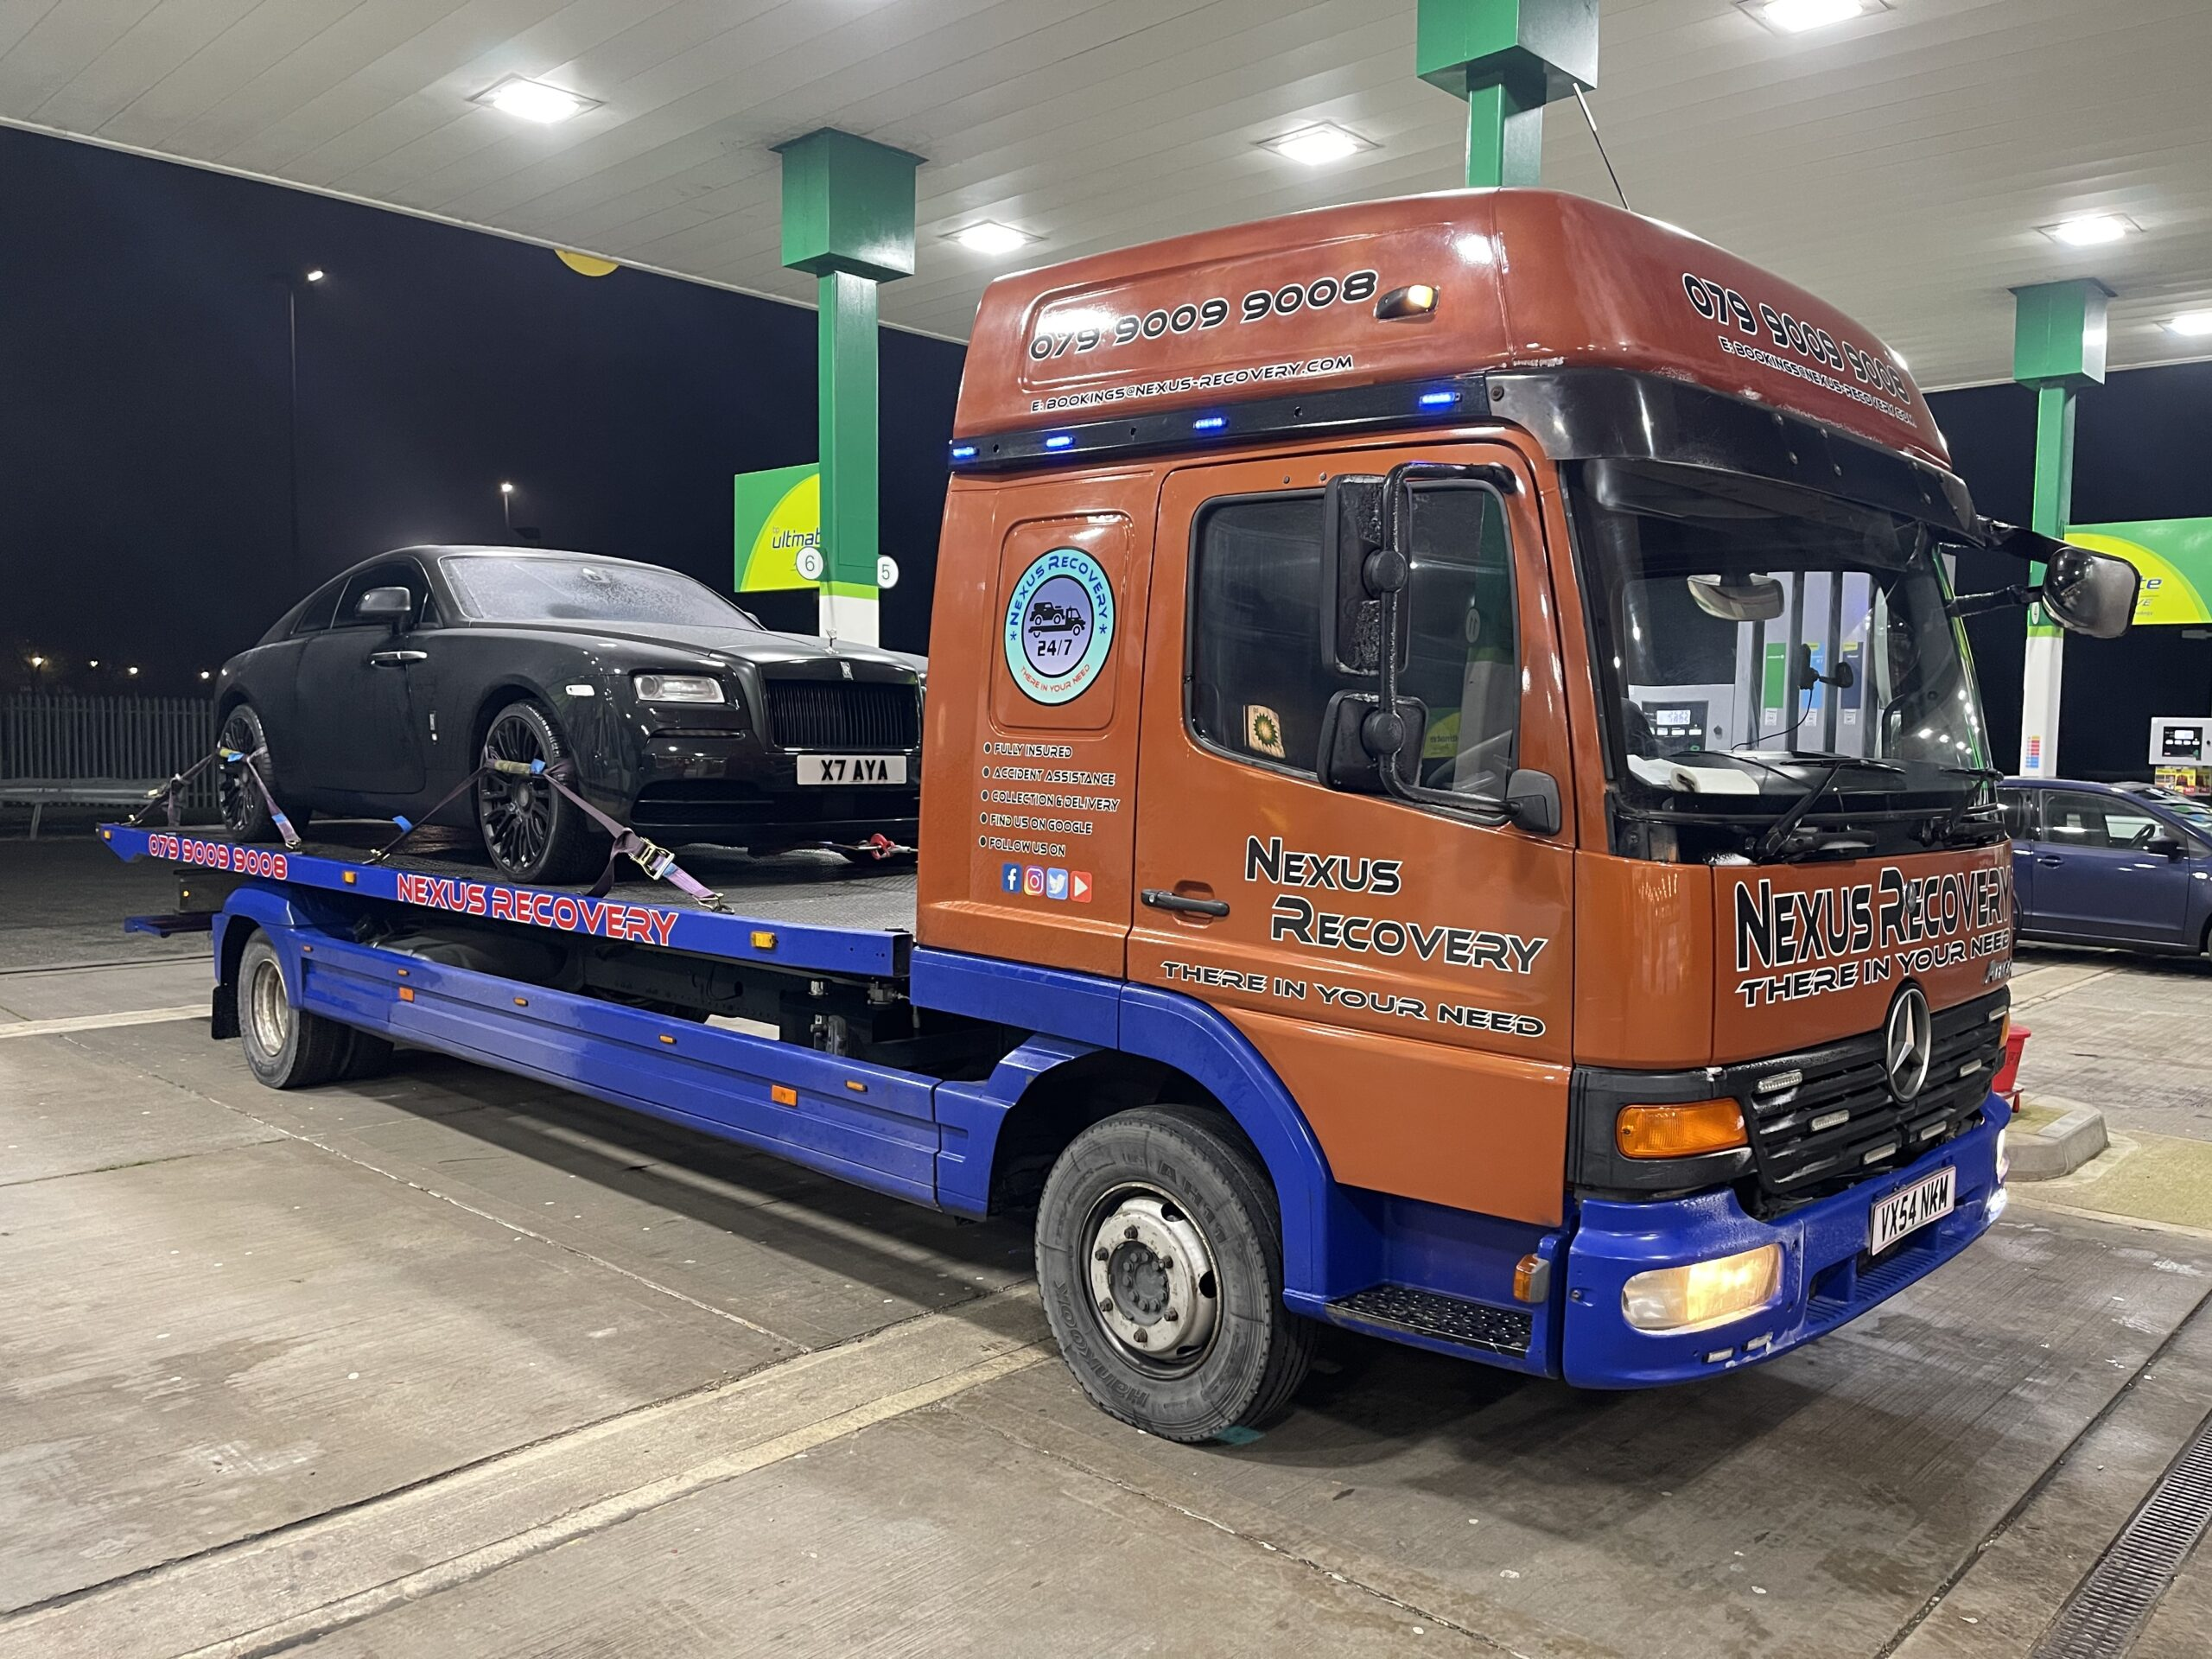 HIGH END CAR RECOVERY SERVICES